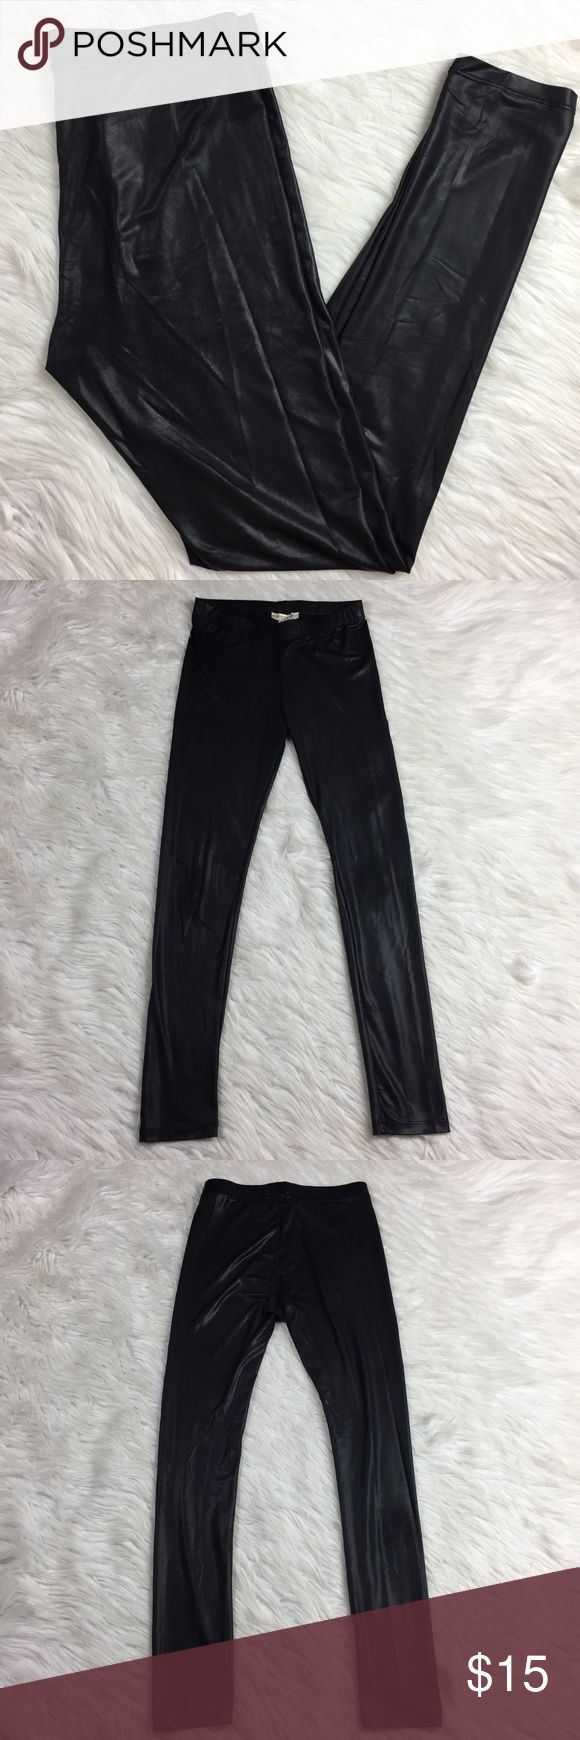 """•• Arden B Liquid Leggings • Black Full Length Arden B liquid leggings in good condition overall. Very faint fabric thinning throughout. The higher rise waist band makes them very comfortable and flattering to many body shapes. These are perfect for dressing up and down. The fabric is thin and light weight. Looks really great layered.  Measurements(approx.) Inseam: 28"""" Waist: 13""""  Comes from a pet free smoke free home. (LLR0-0558) Arden B Pants Leggings"""